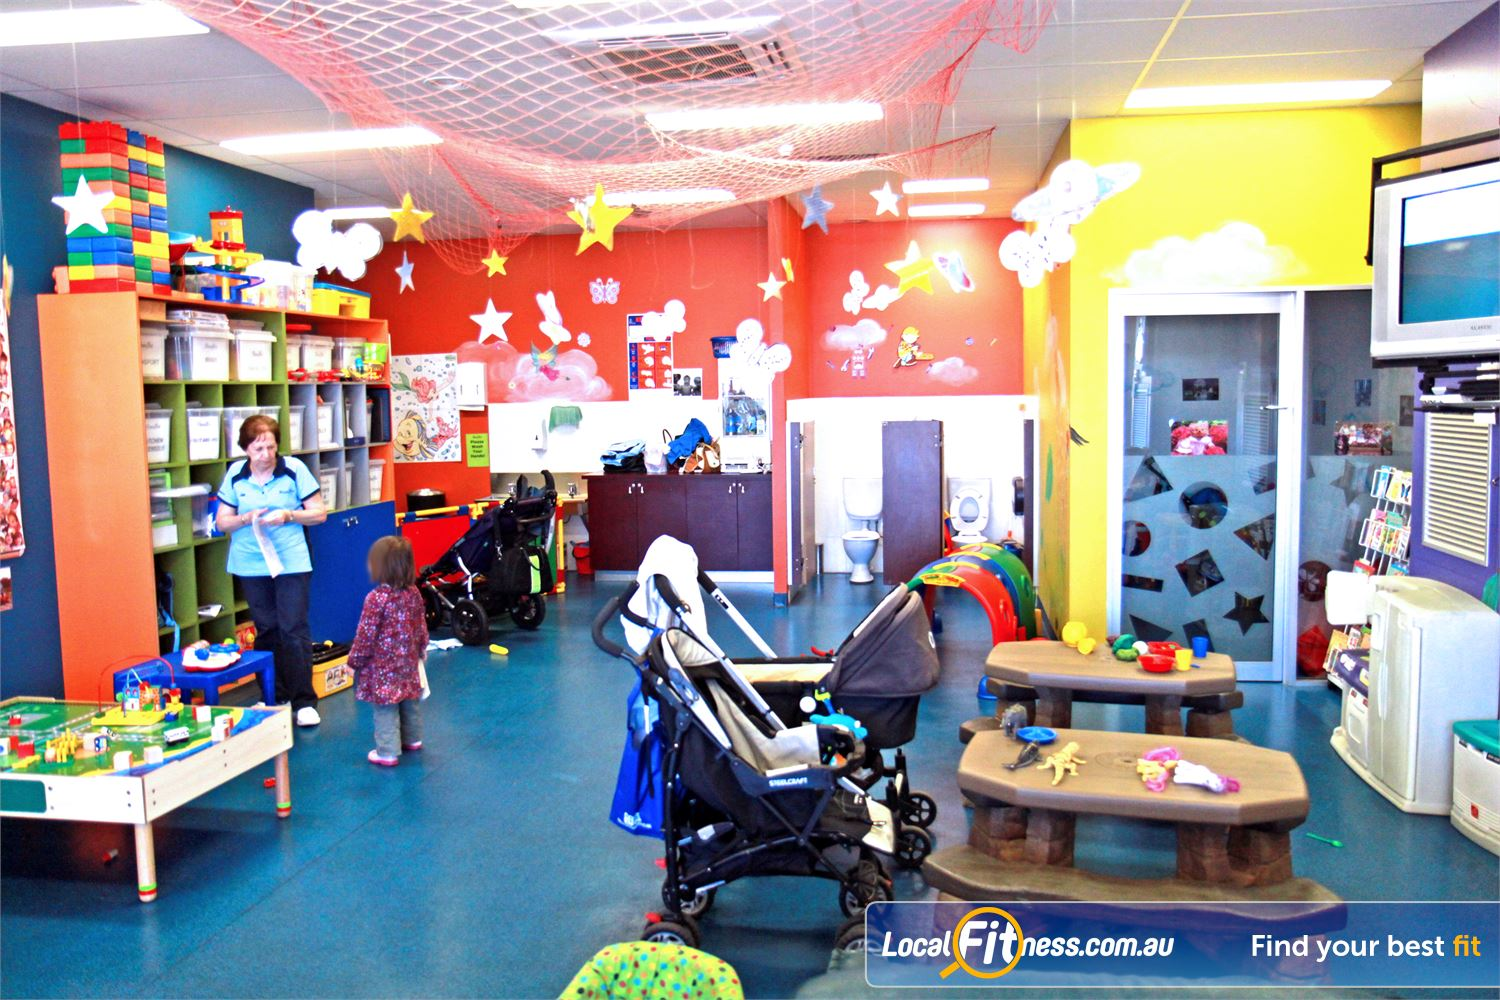 Goodlife Health Clubs Innaloo Convenient Playzone Child Minding at Goodlife Innaloo.